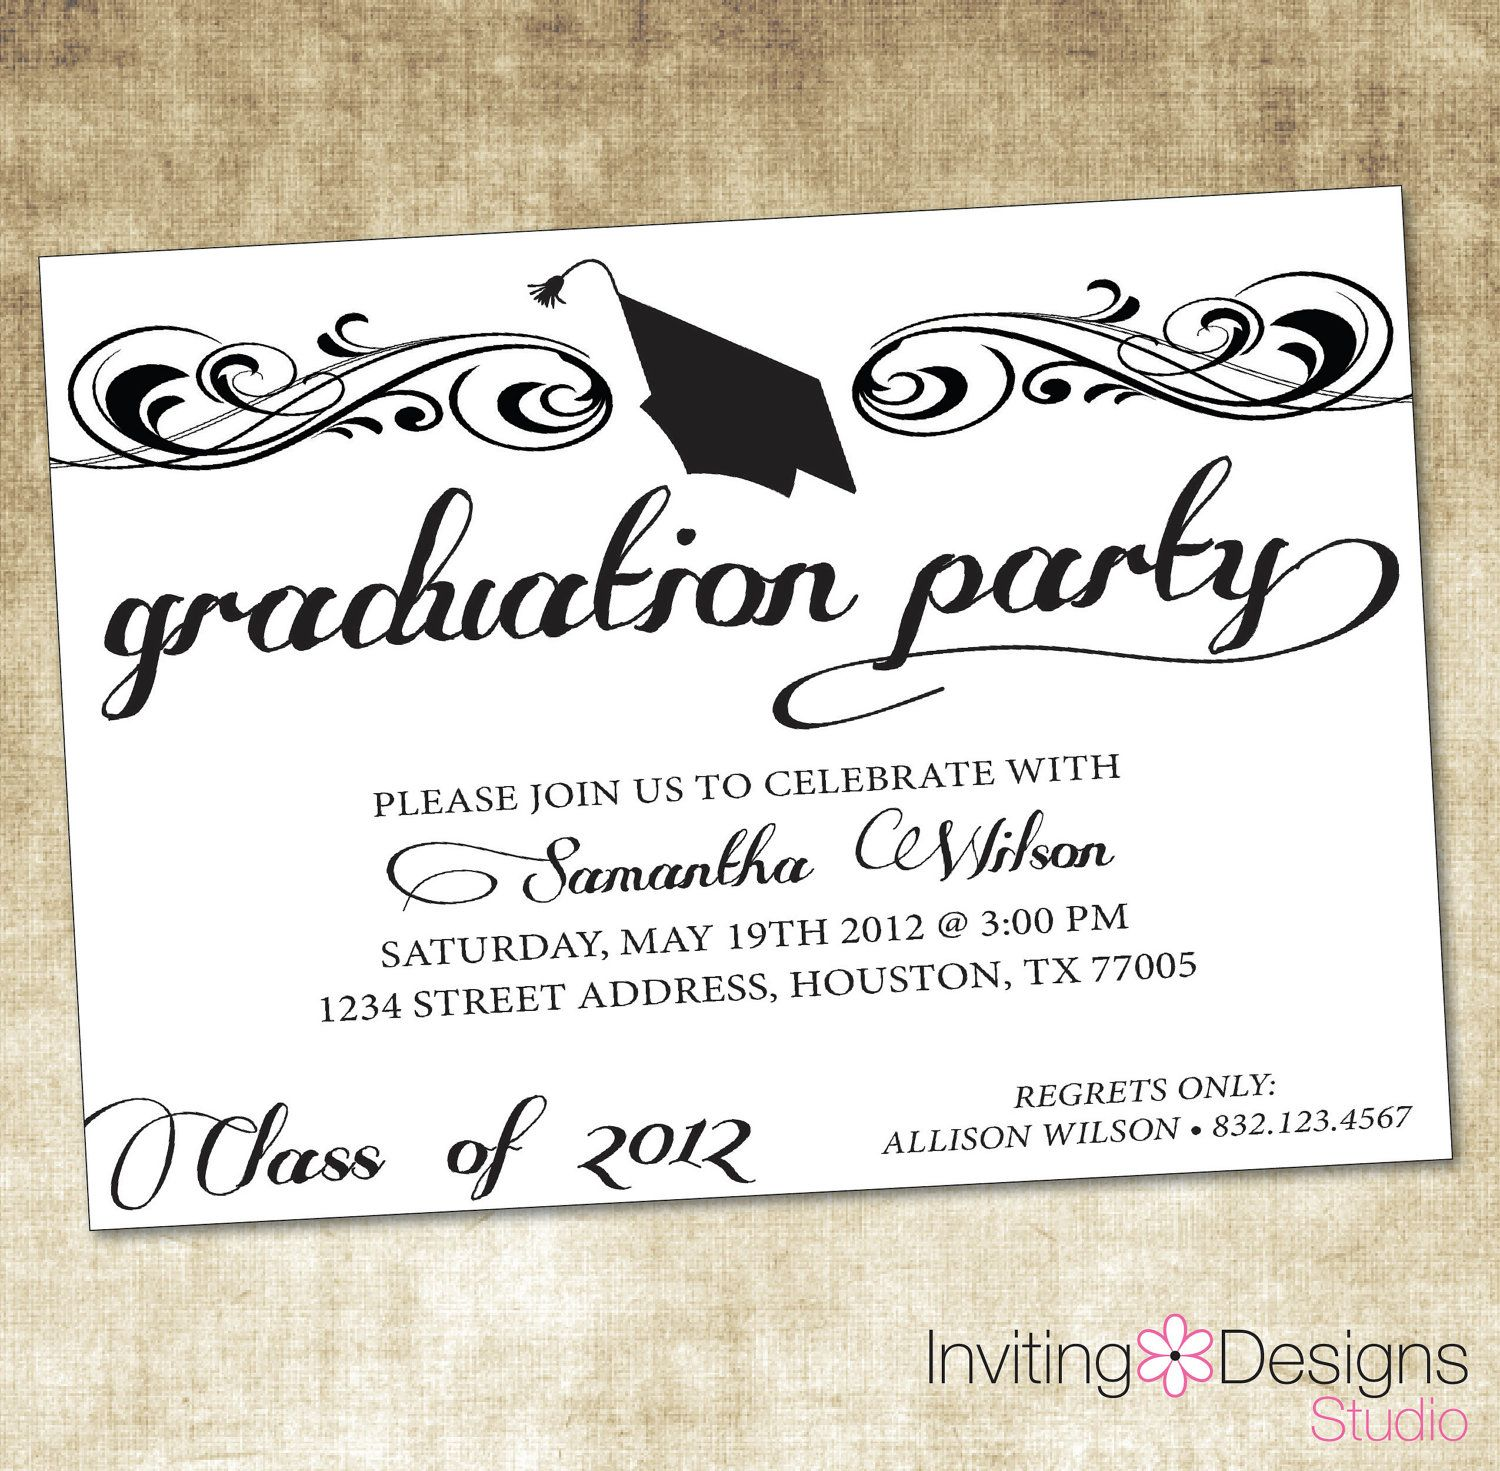 000 Marvelou College Graduation Invitation Template Highest Quality  Templates Free PartyFull